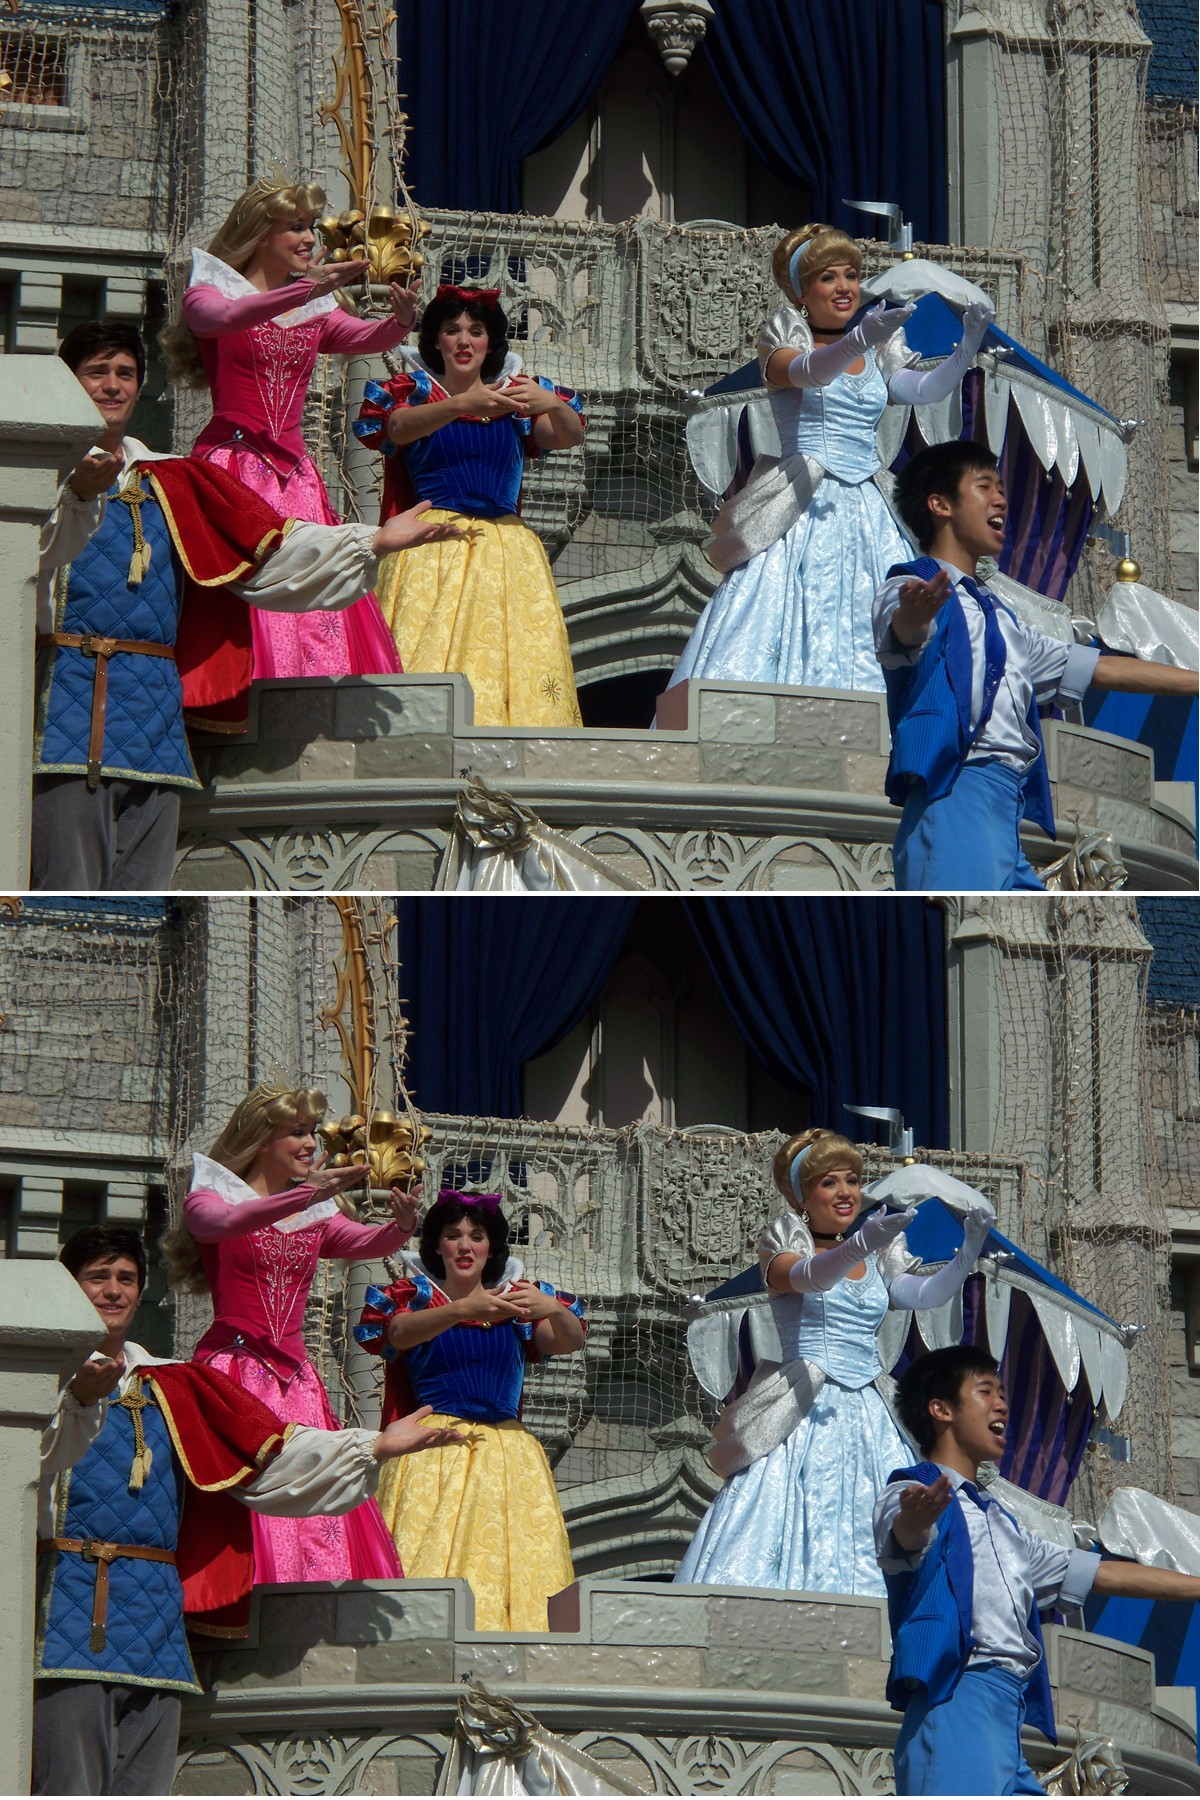 Disney Princesses: Find the differences